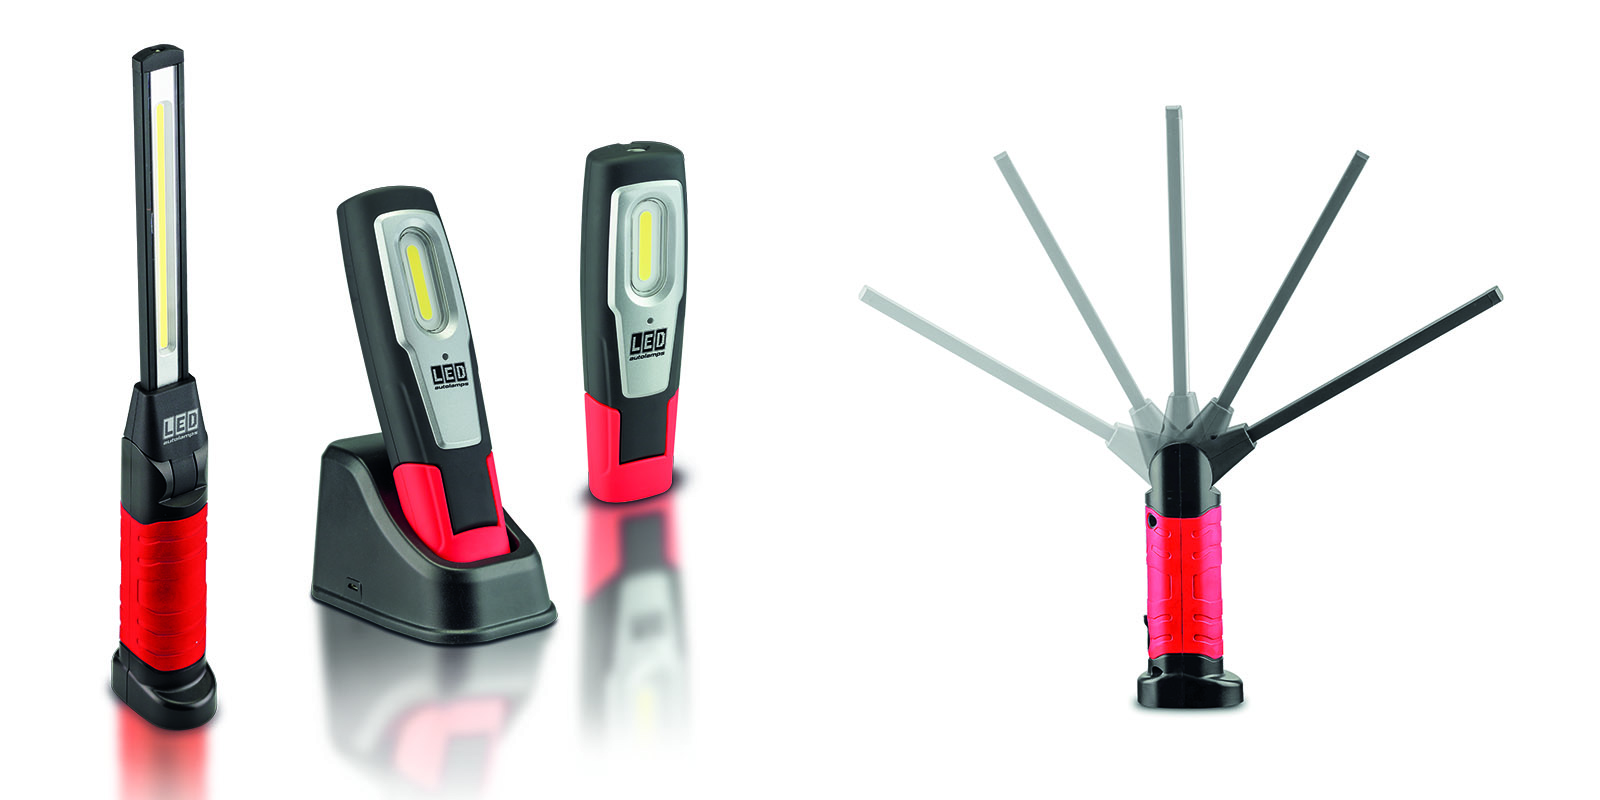 New Handheld Inspection Lamps Available Now